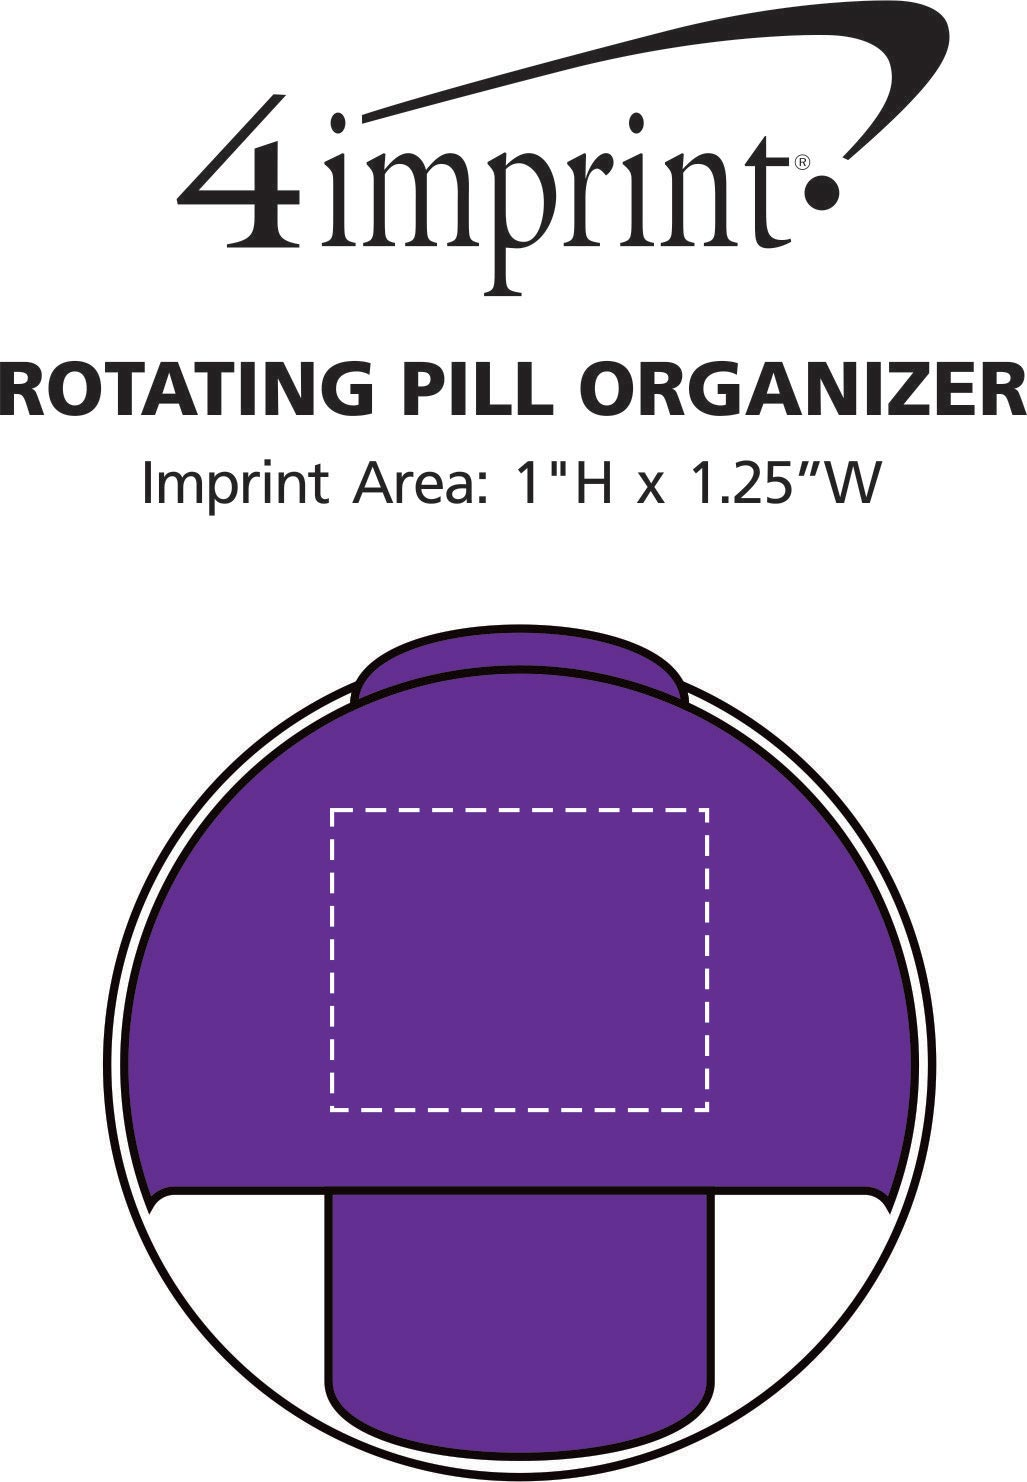 Imprint Area of Rotating Pill Organizer